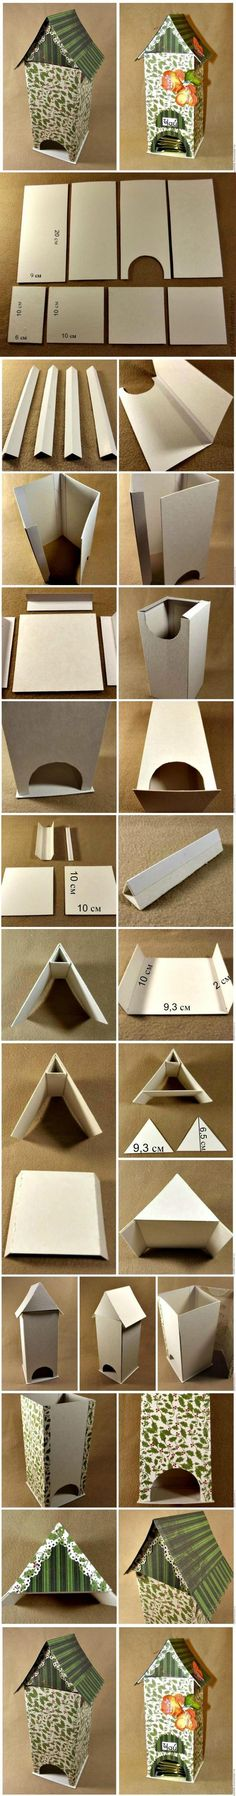 Dispensador de bolsas de té en cartón - DIY Cardboard Tea Bag Dispenser